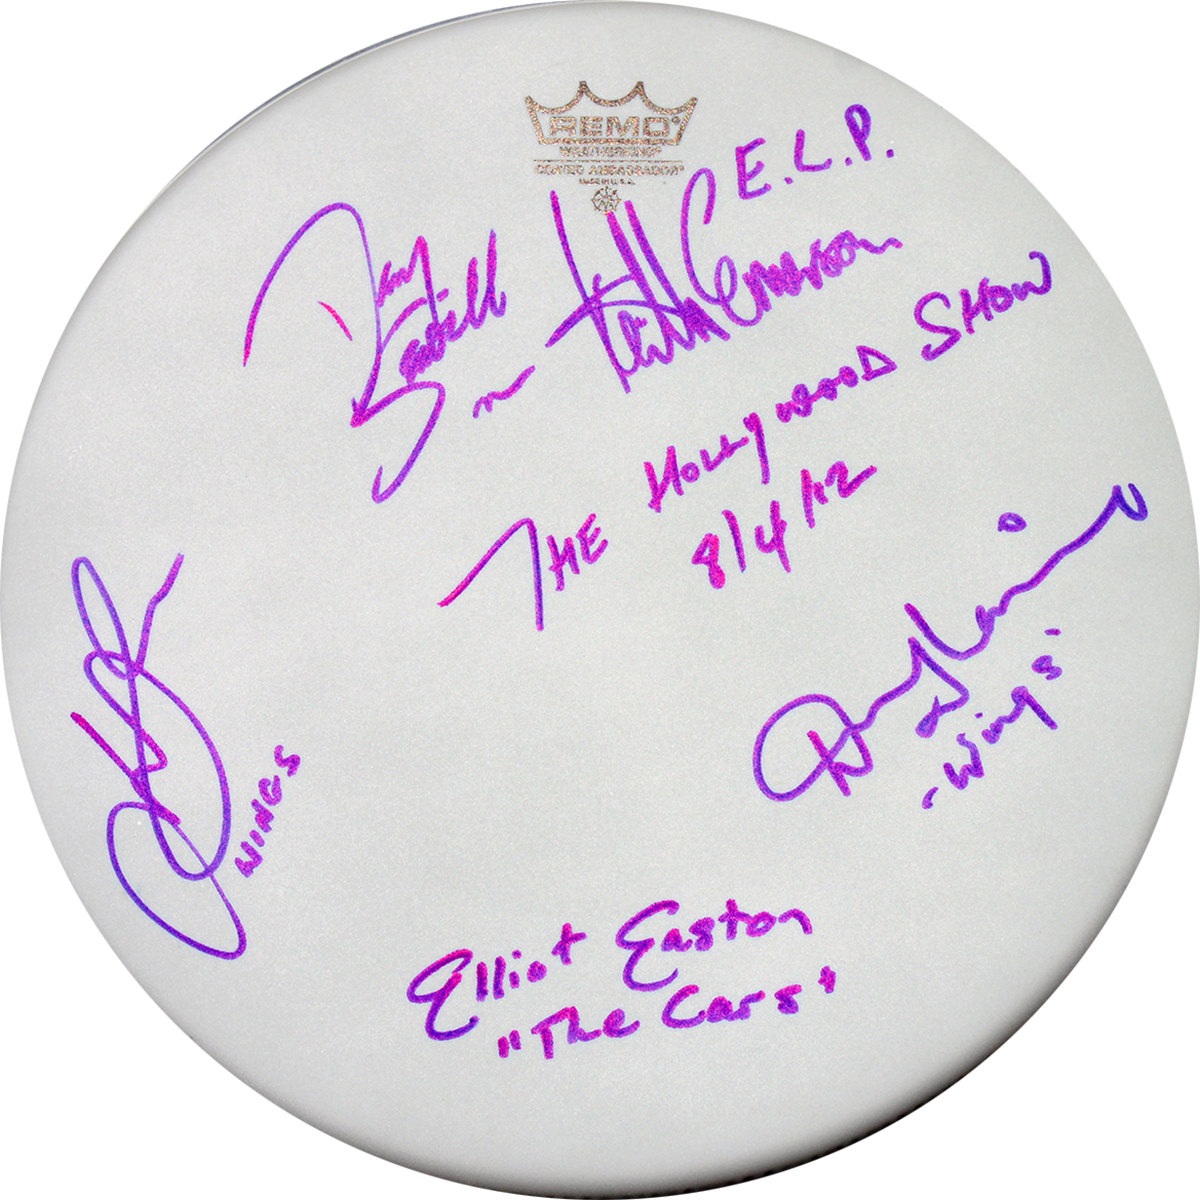 Drumhead - The Hollywood Show